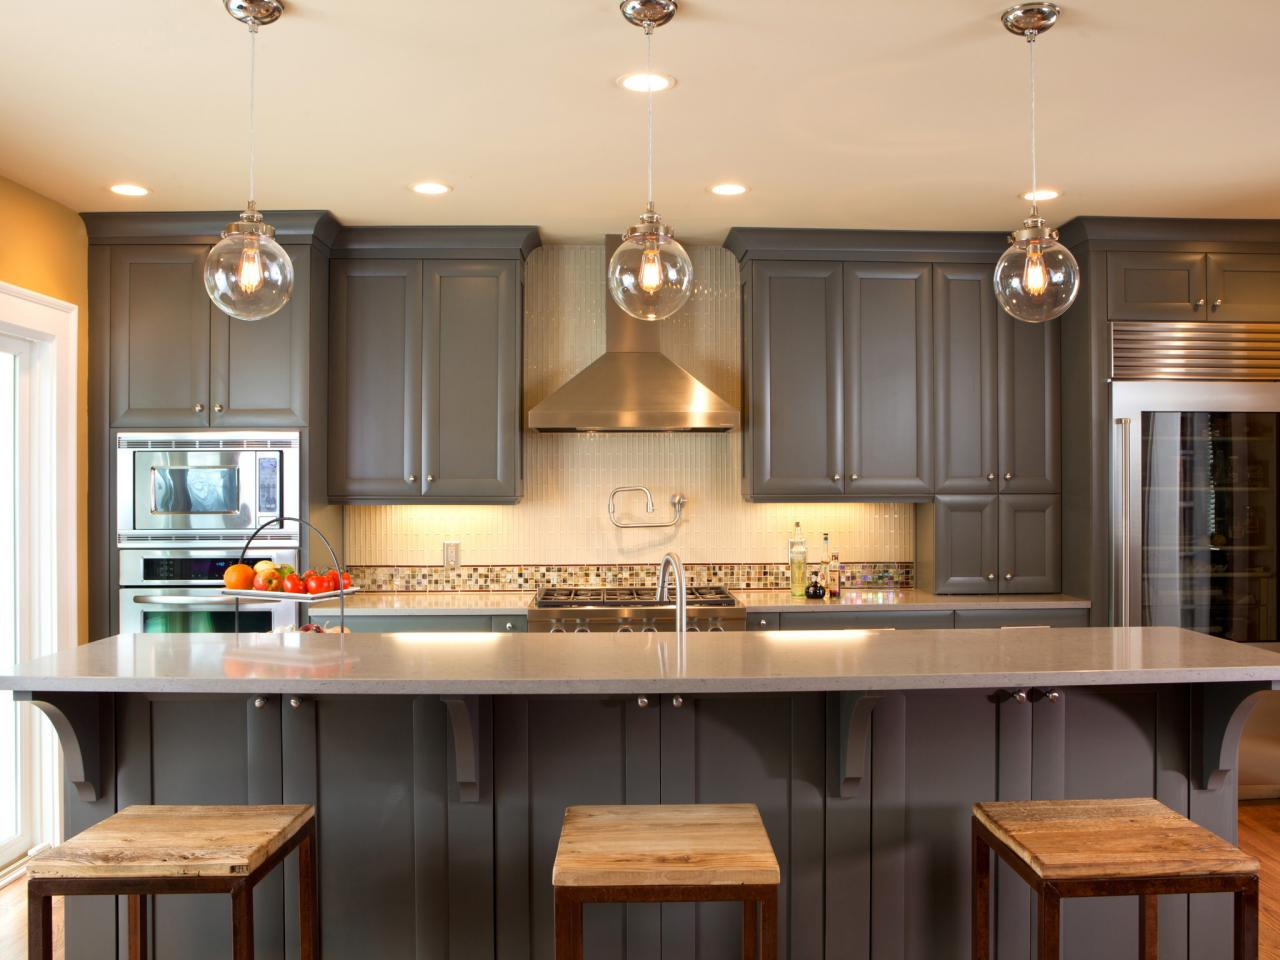 Ideas For Painting Kitchen Cabinets Pictures From Hgtv Hgtv